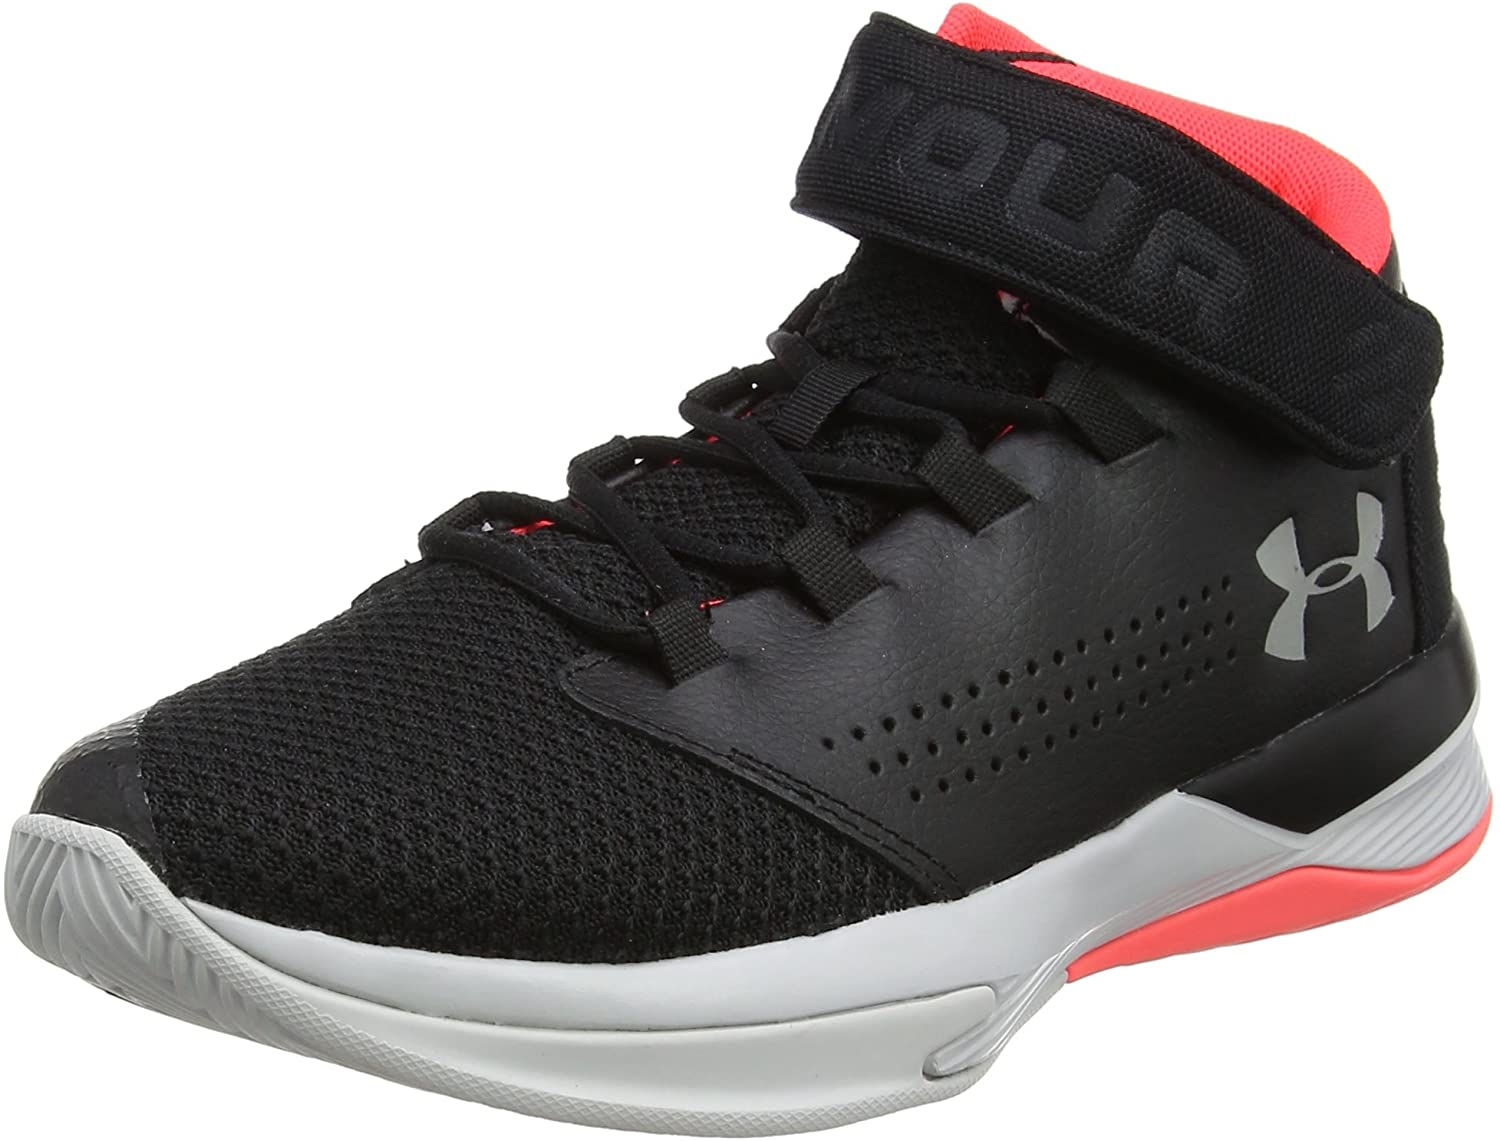 Under Armour Boys' Grade School Get B Z Basketball Shoe